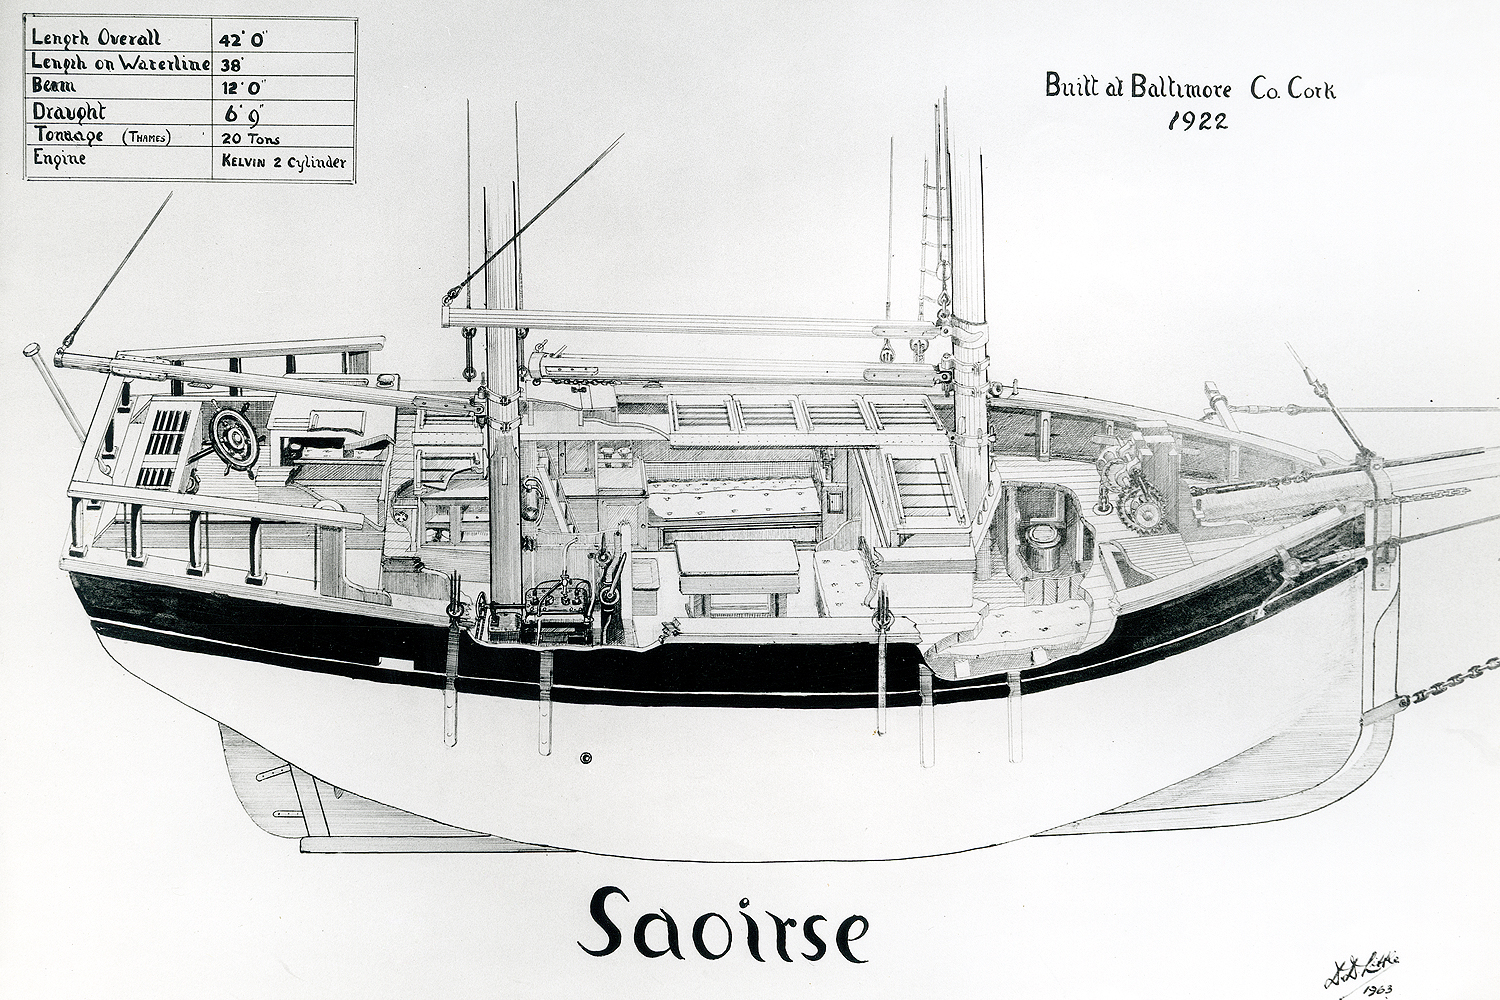 drawing of yacht Saoirse by Conor O'Brien Ireland